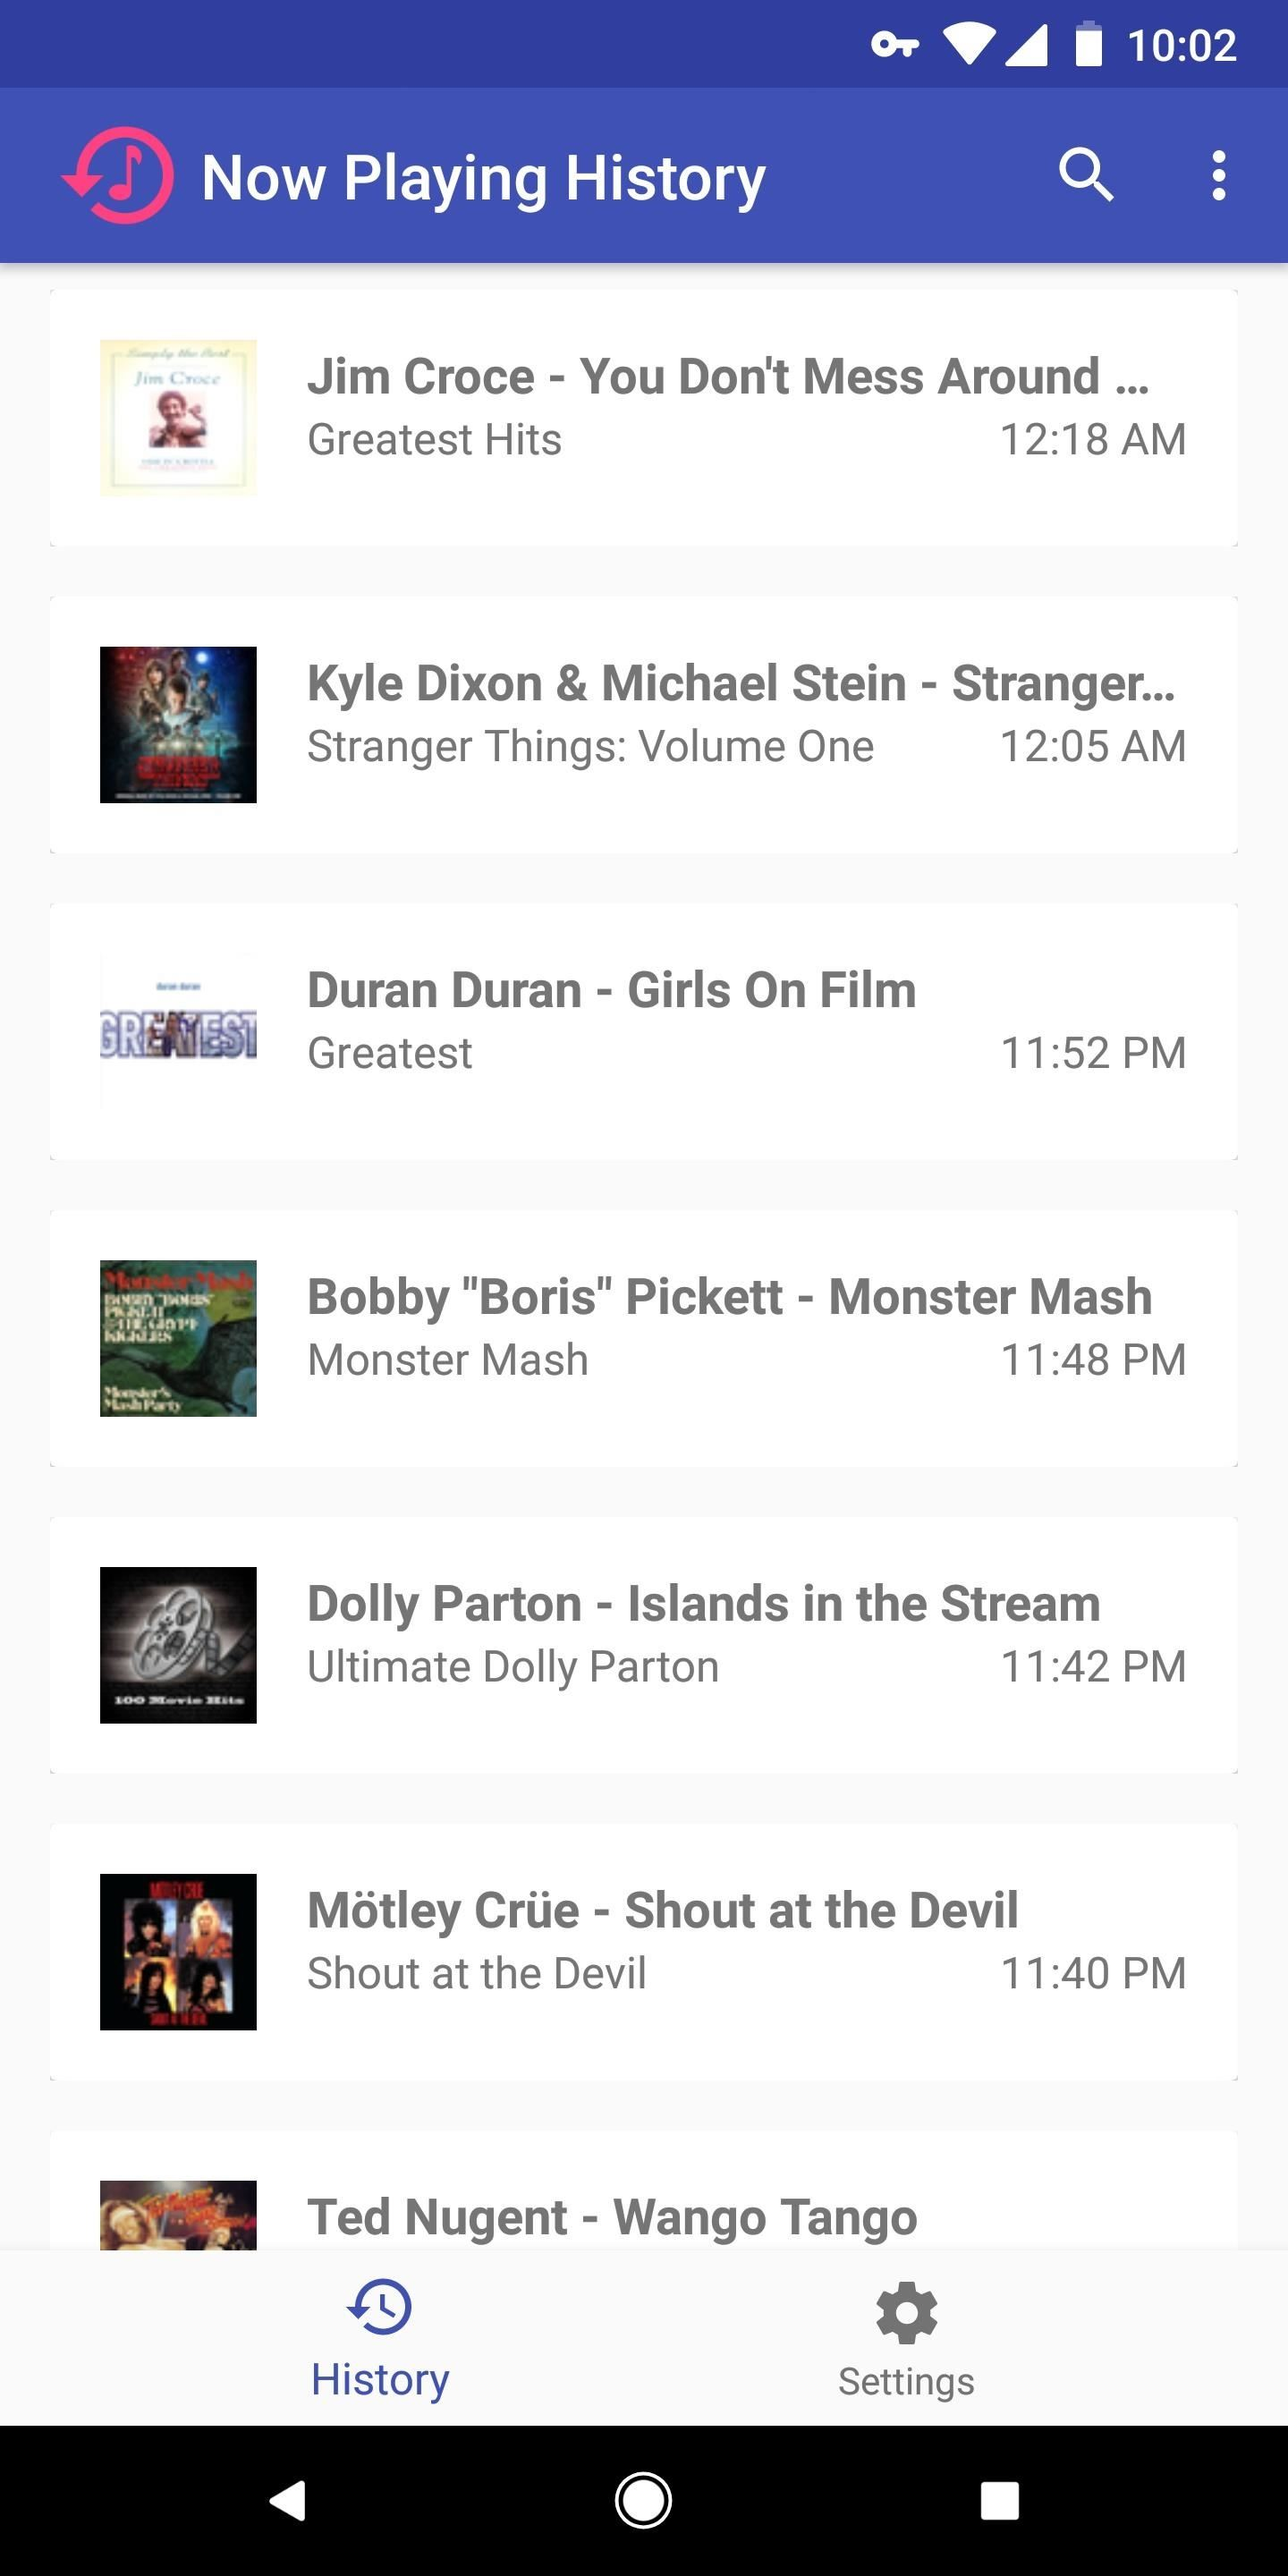 Now Playing History Lets You See All the Songs Your Pixel 2 Has Recognized